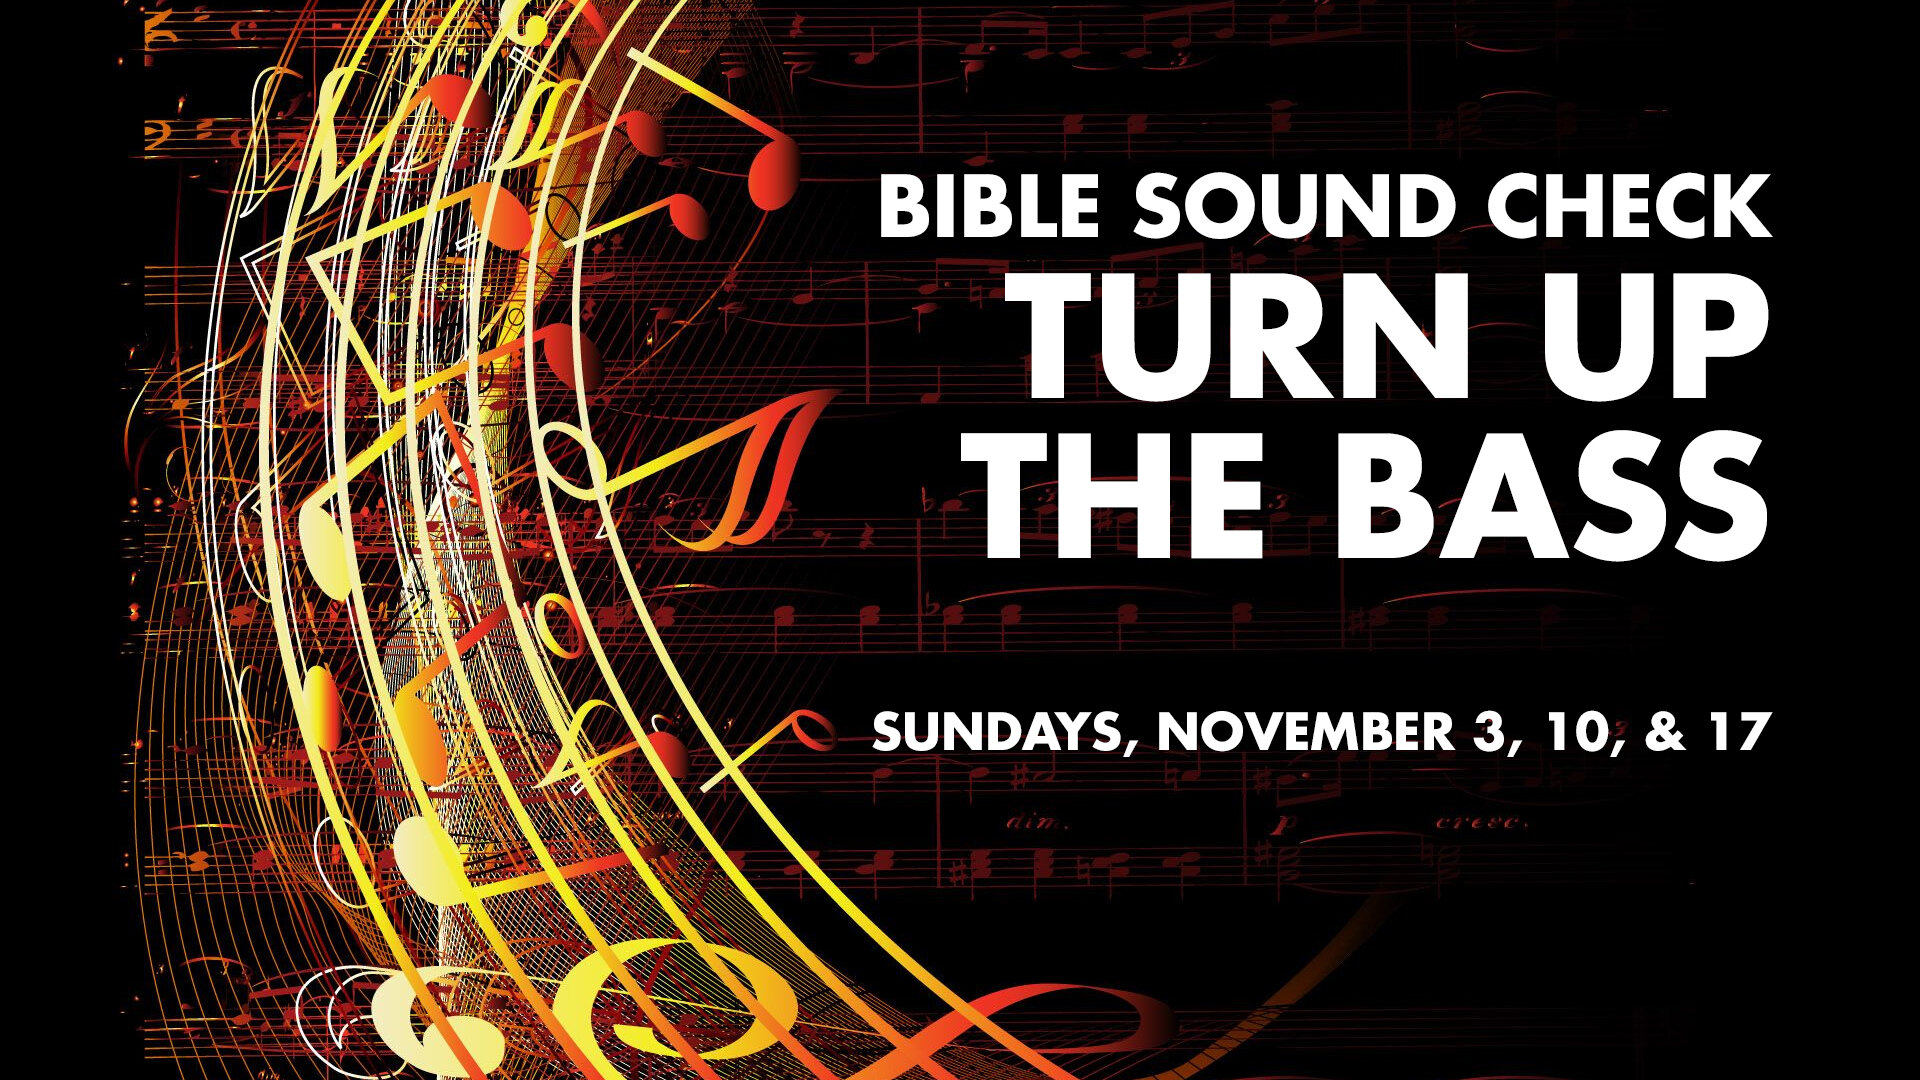 Bible Sound Check: Turn Up The Bass